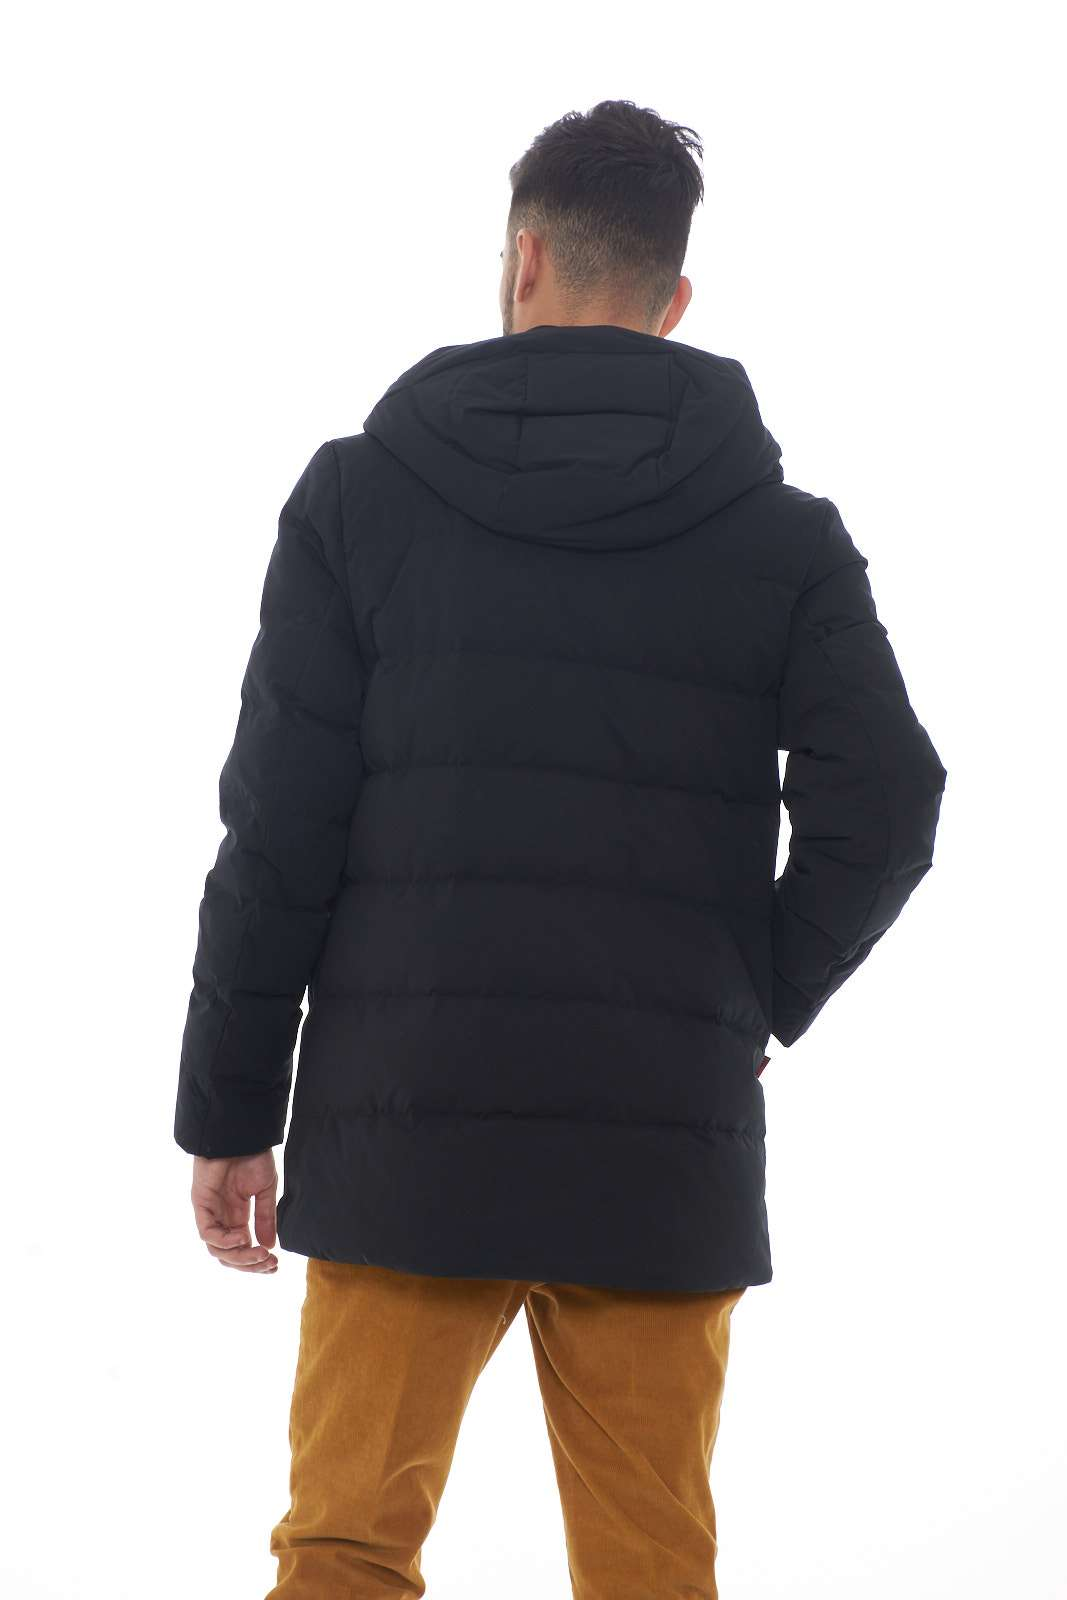 https://www.parmax.com/media/catalog/product/a/i/AI-outlet_parmax-giubbino-uomo-Woolrich-WOLOW0009-C.jpg